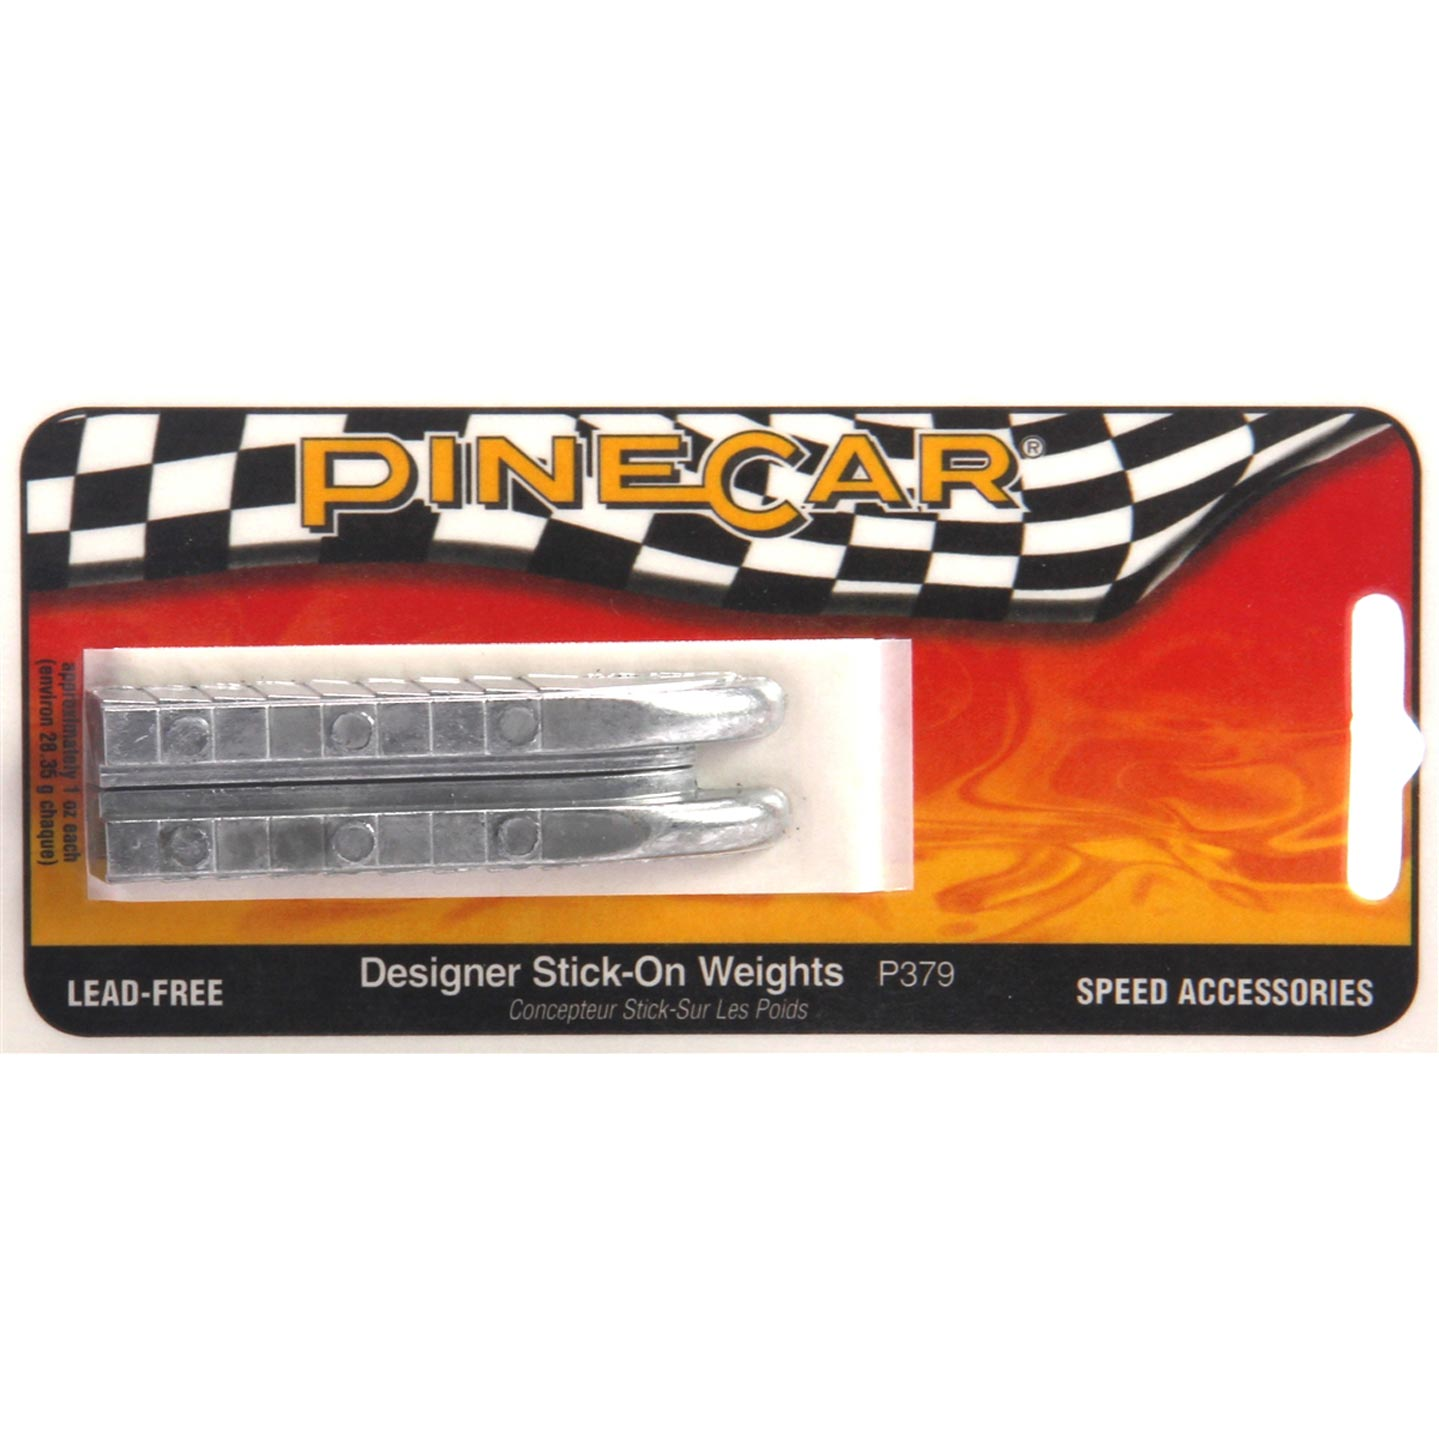 PineCar Derby Car Weights: Designer Stick-On, 2 oz